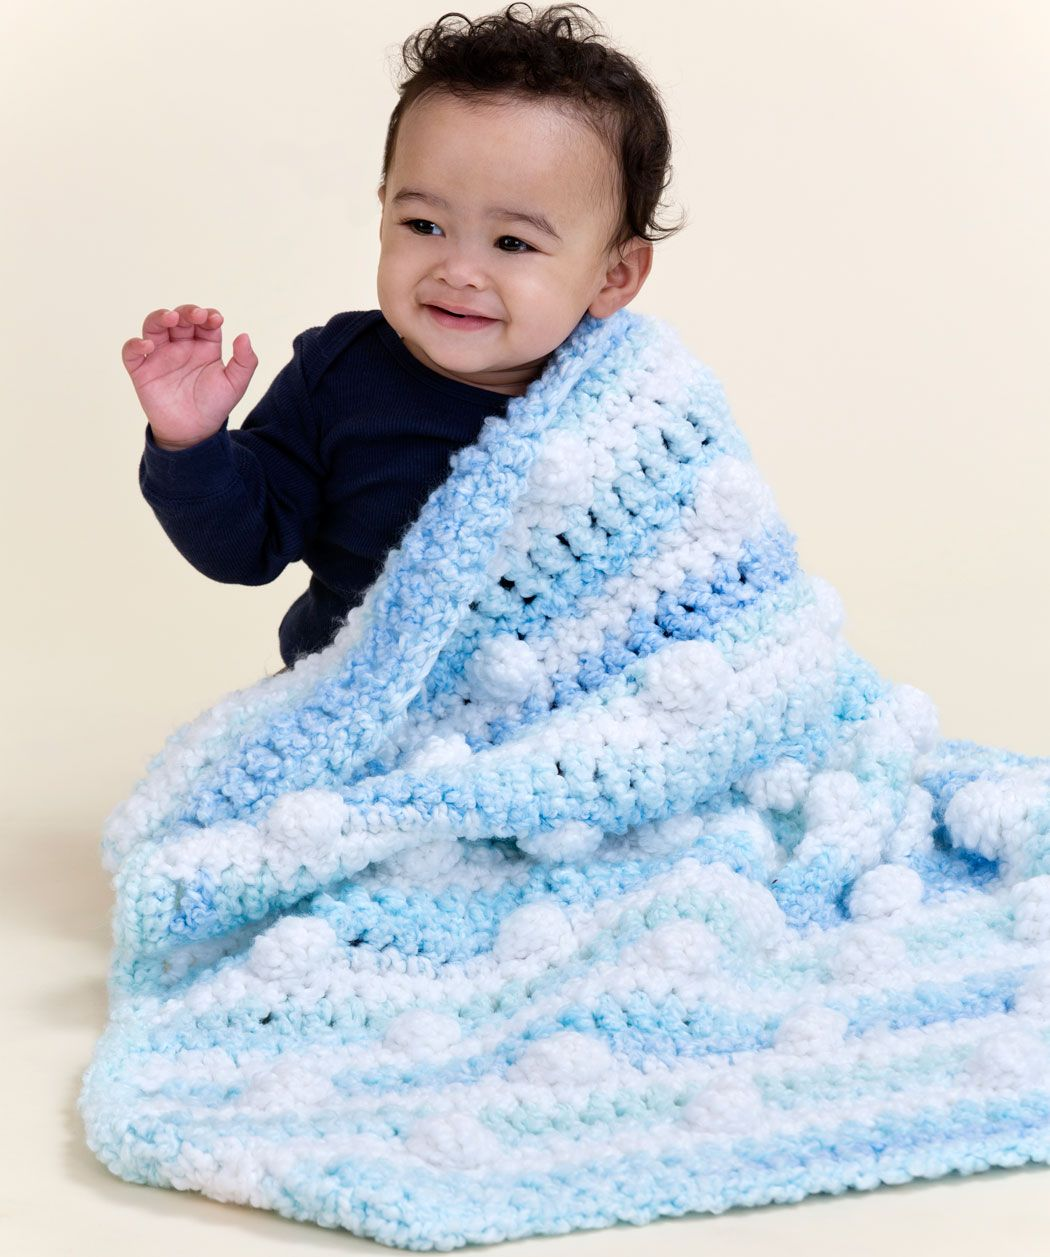 Cuddly Travel Blanket Free Crochet Pattern from Red Heart